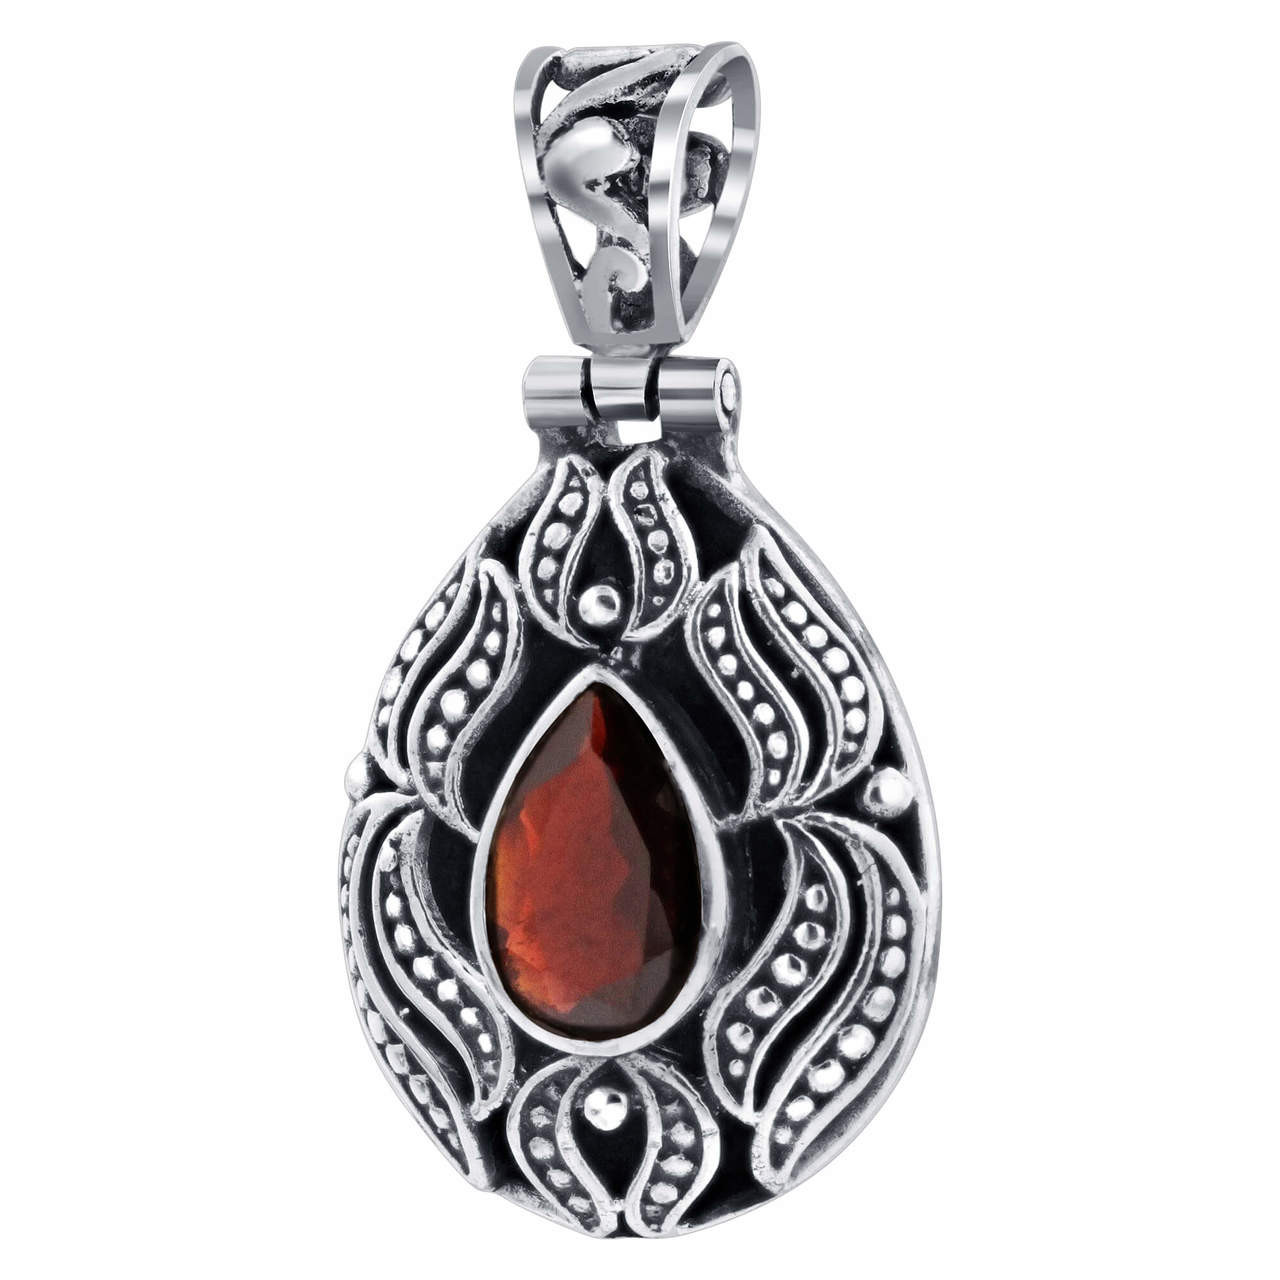 Teardrop Garnet January Birthstone 925 Sterling Silver Gemstone 0.75 x 1.5 inch Pendant